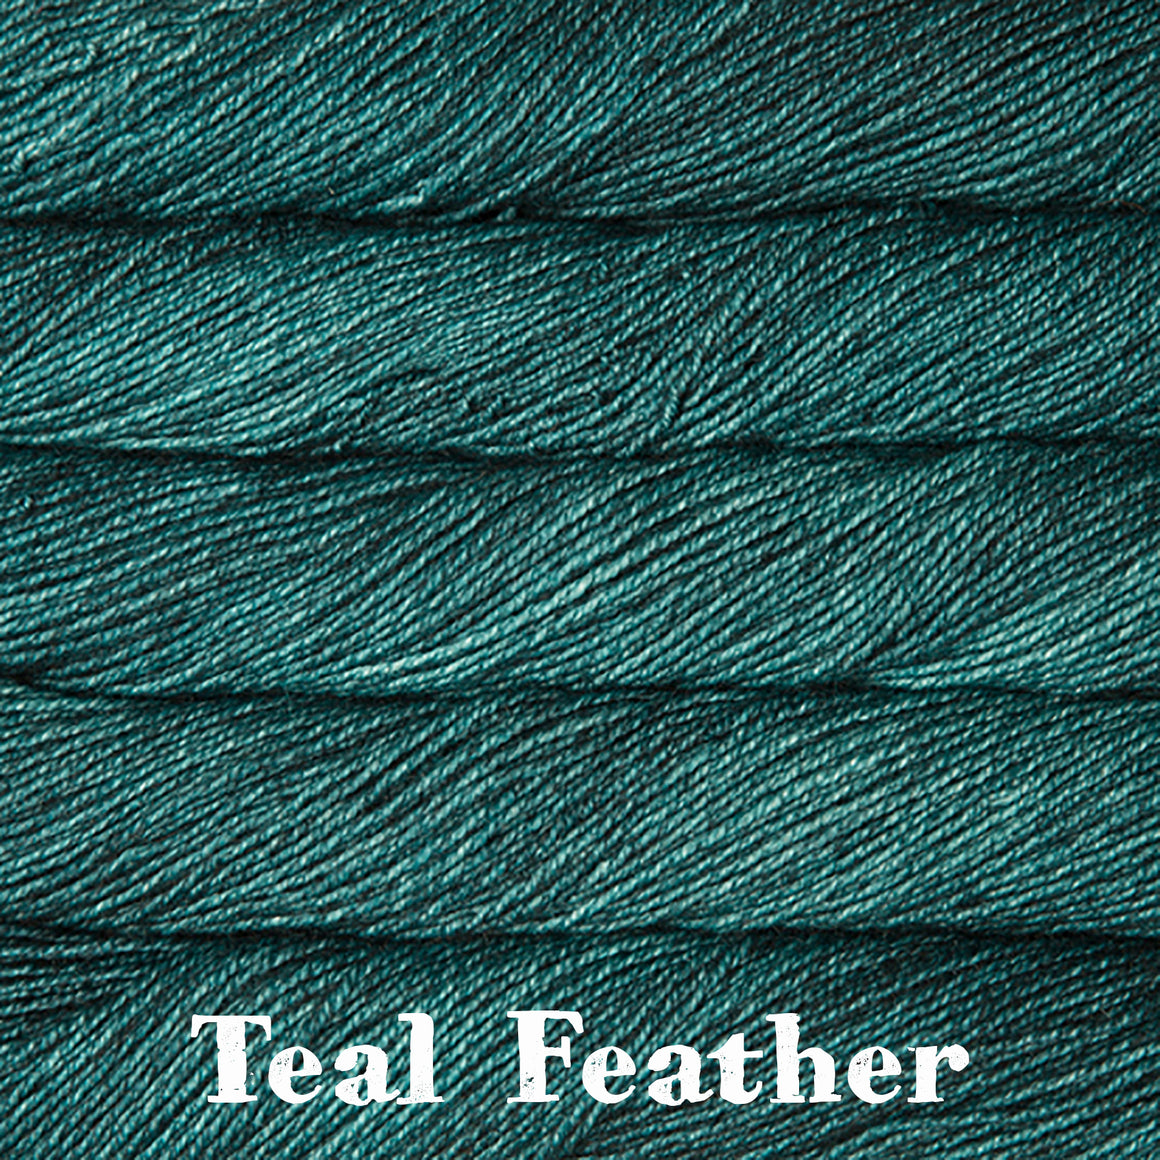 dos tierras teal feather